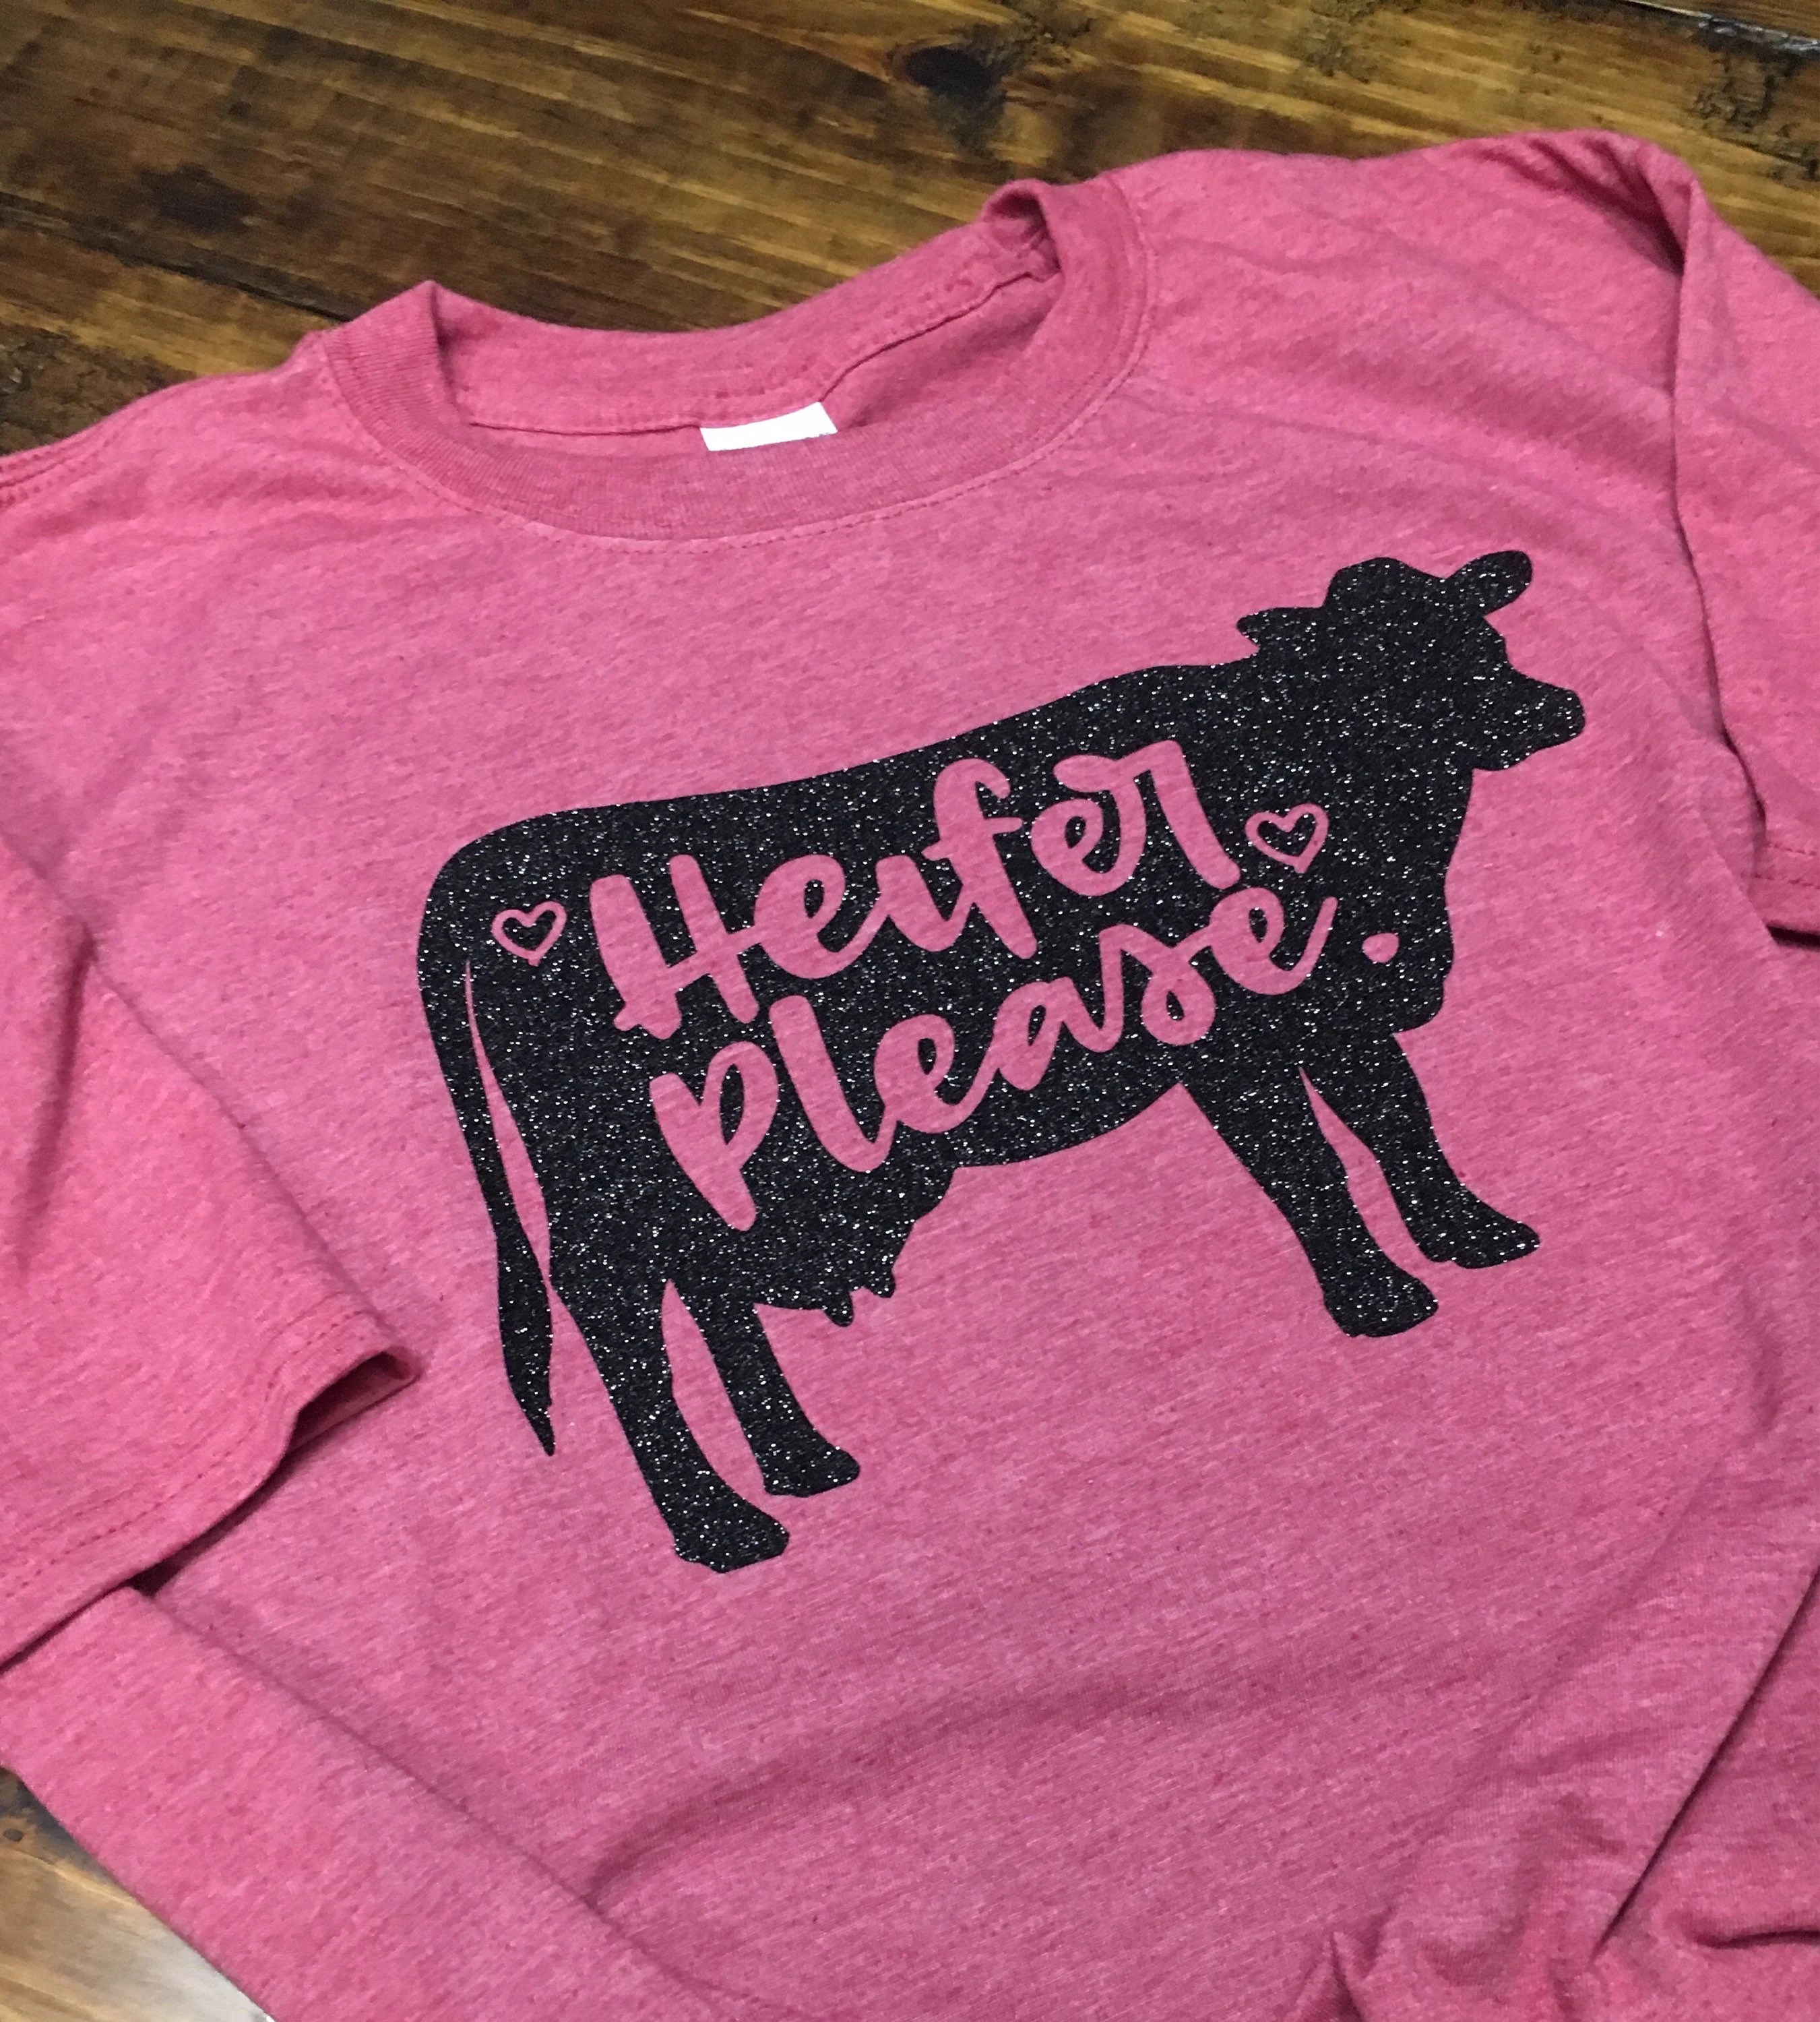 Jb Lighting T-shirt Heifer Please Shirt Triblend Soft Tshirt Cow